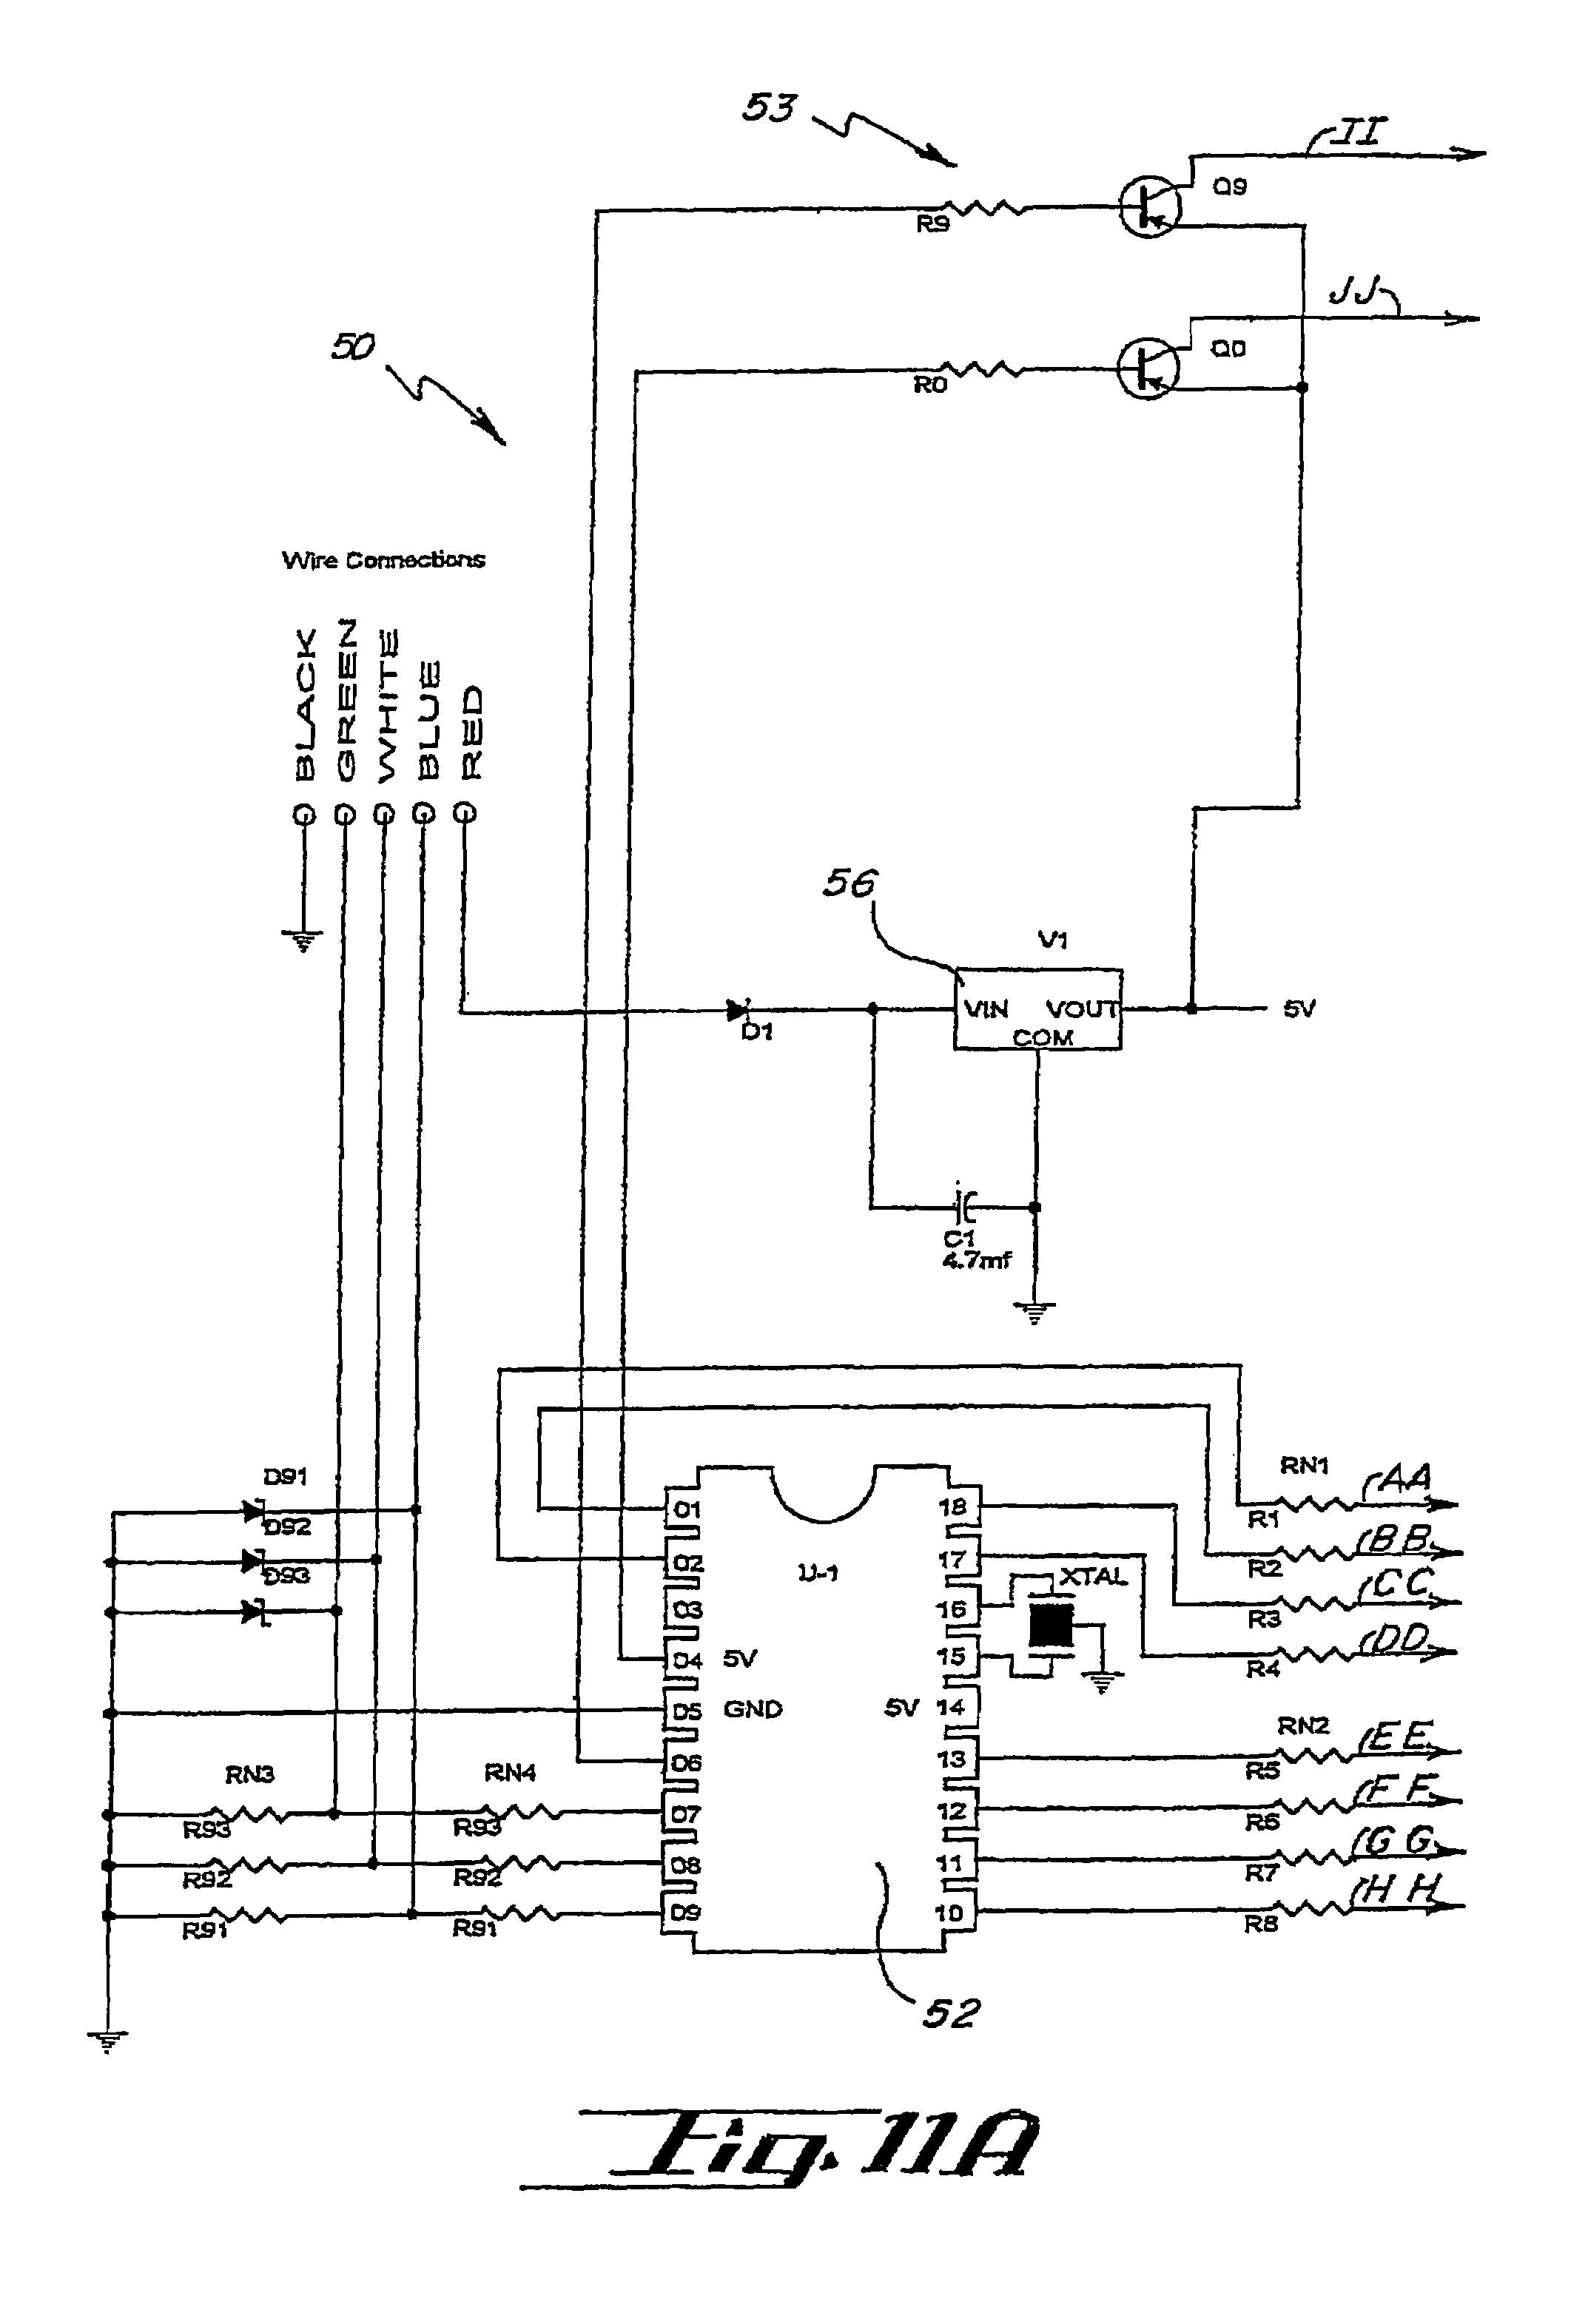 medium resolution of best of wiring diagram for shop lights diagrams digramssample diagramimages wiringdiagramsample wiringdiagram